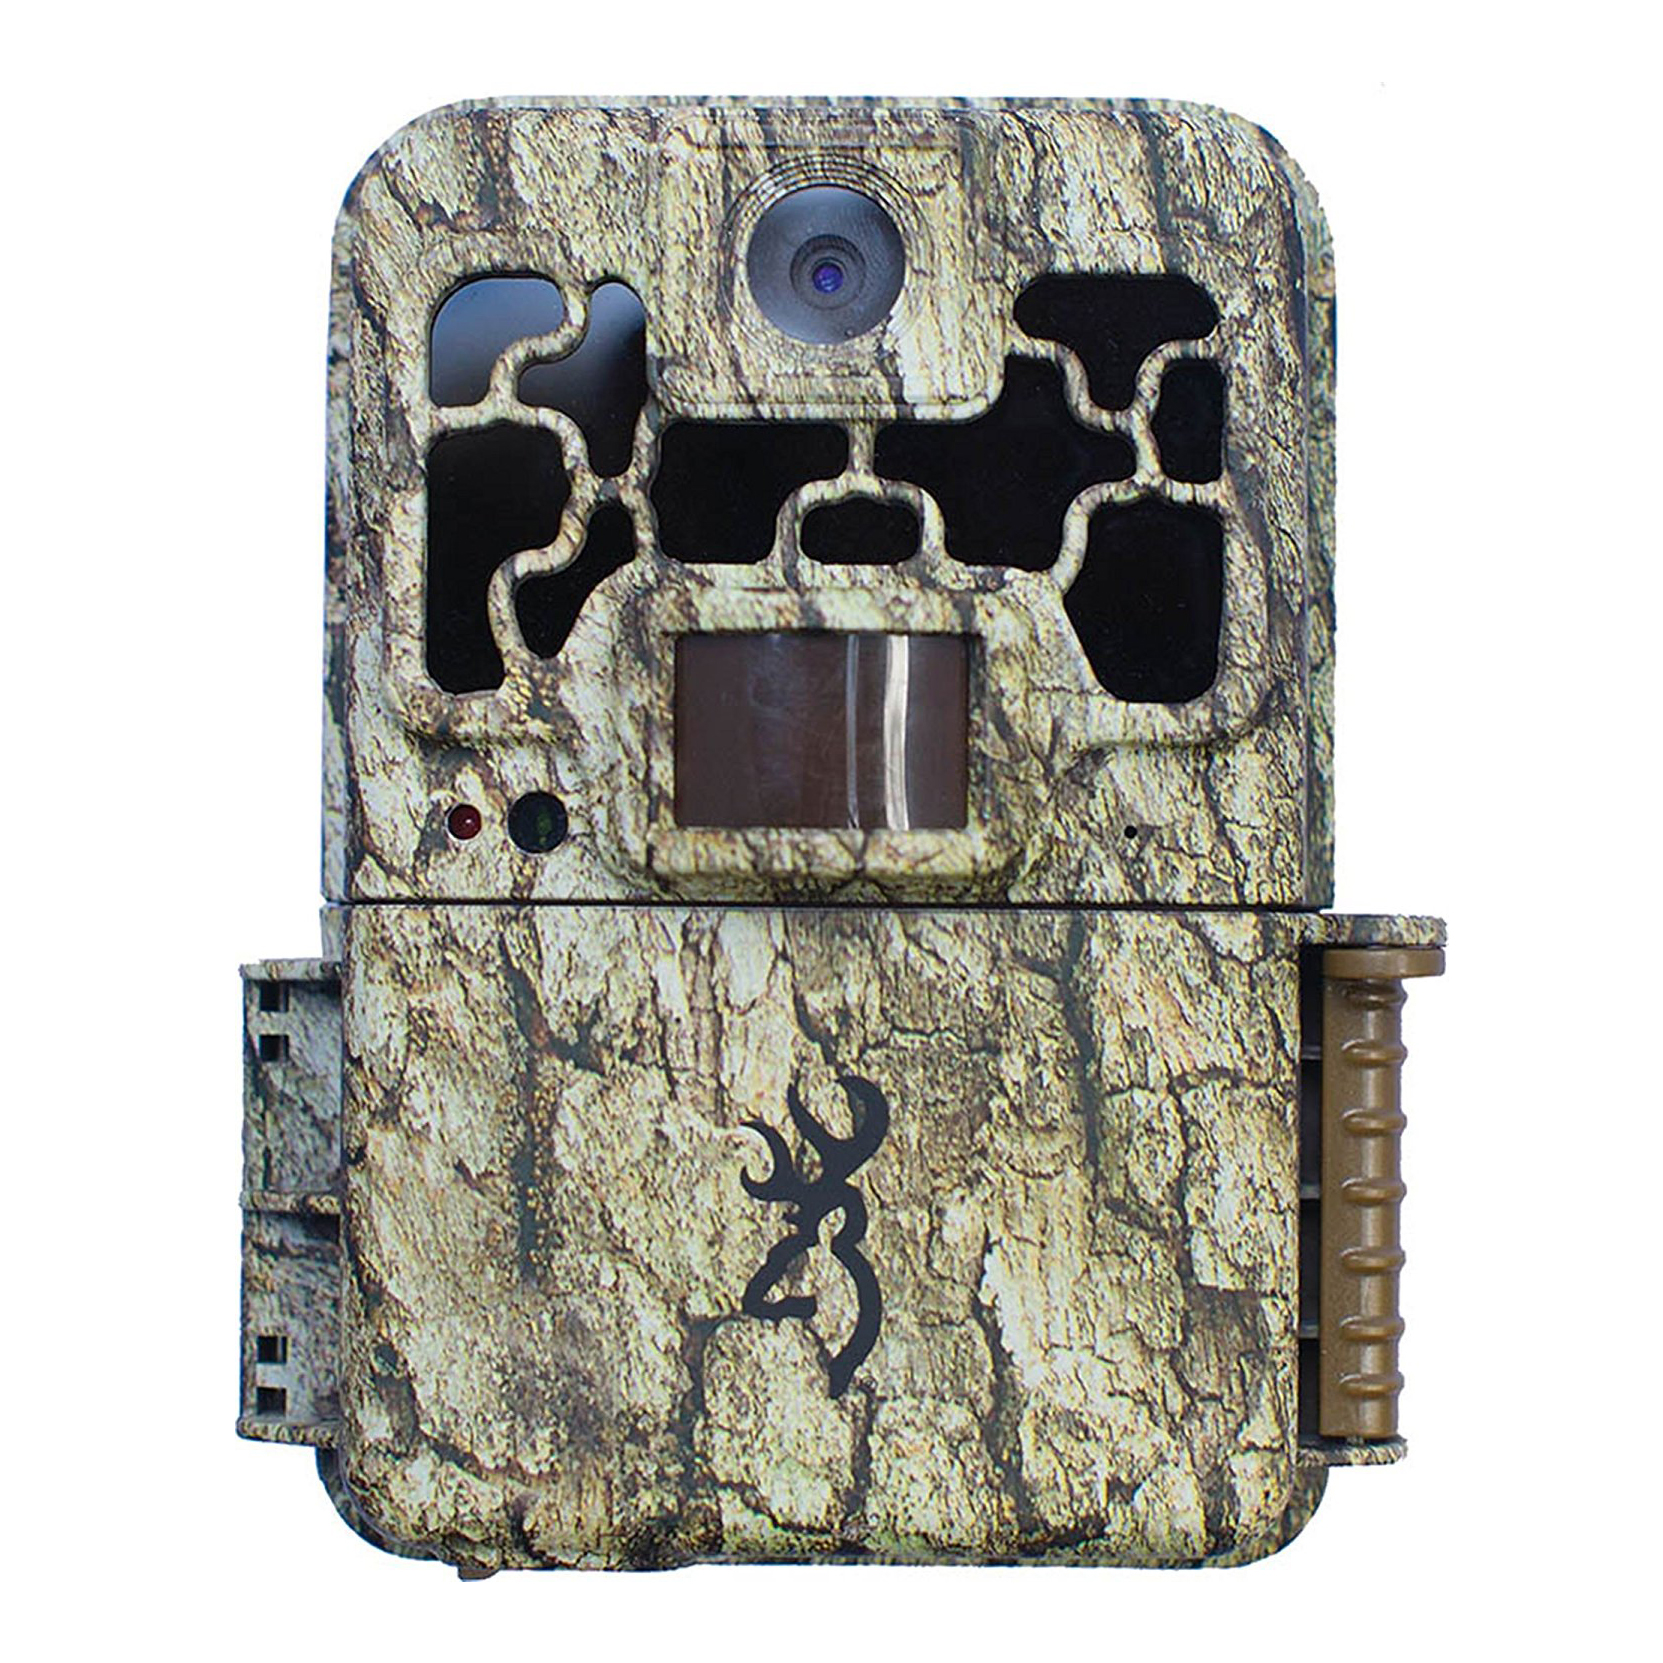 Browning Trail Cameras Spec Ops 10MP FHD Video Infrared Game Camera   BTC-8FHD